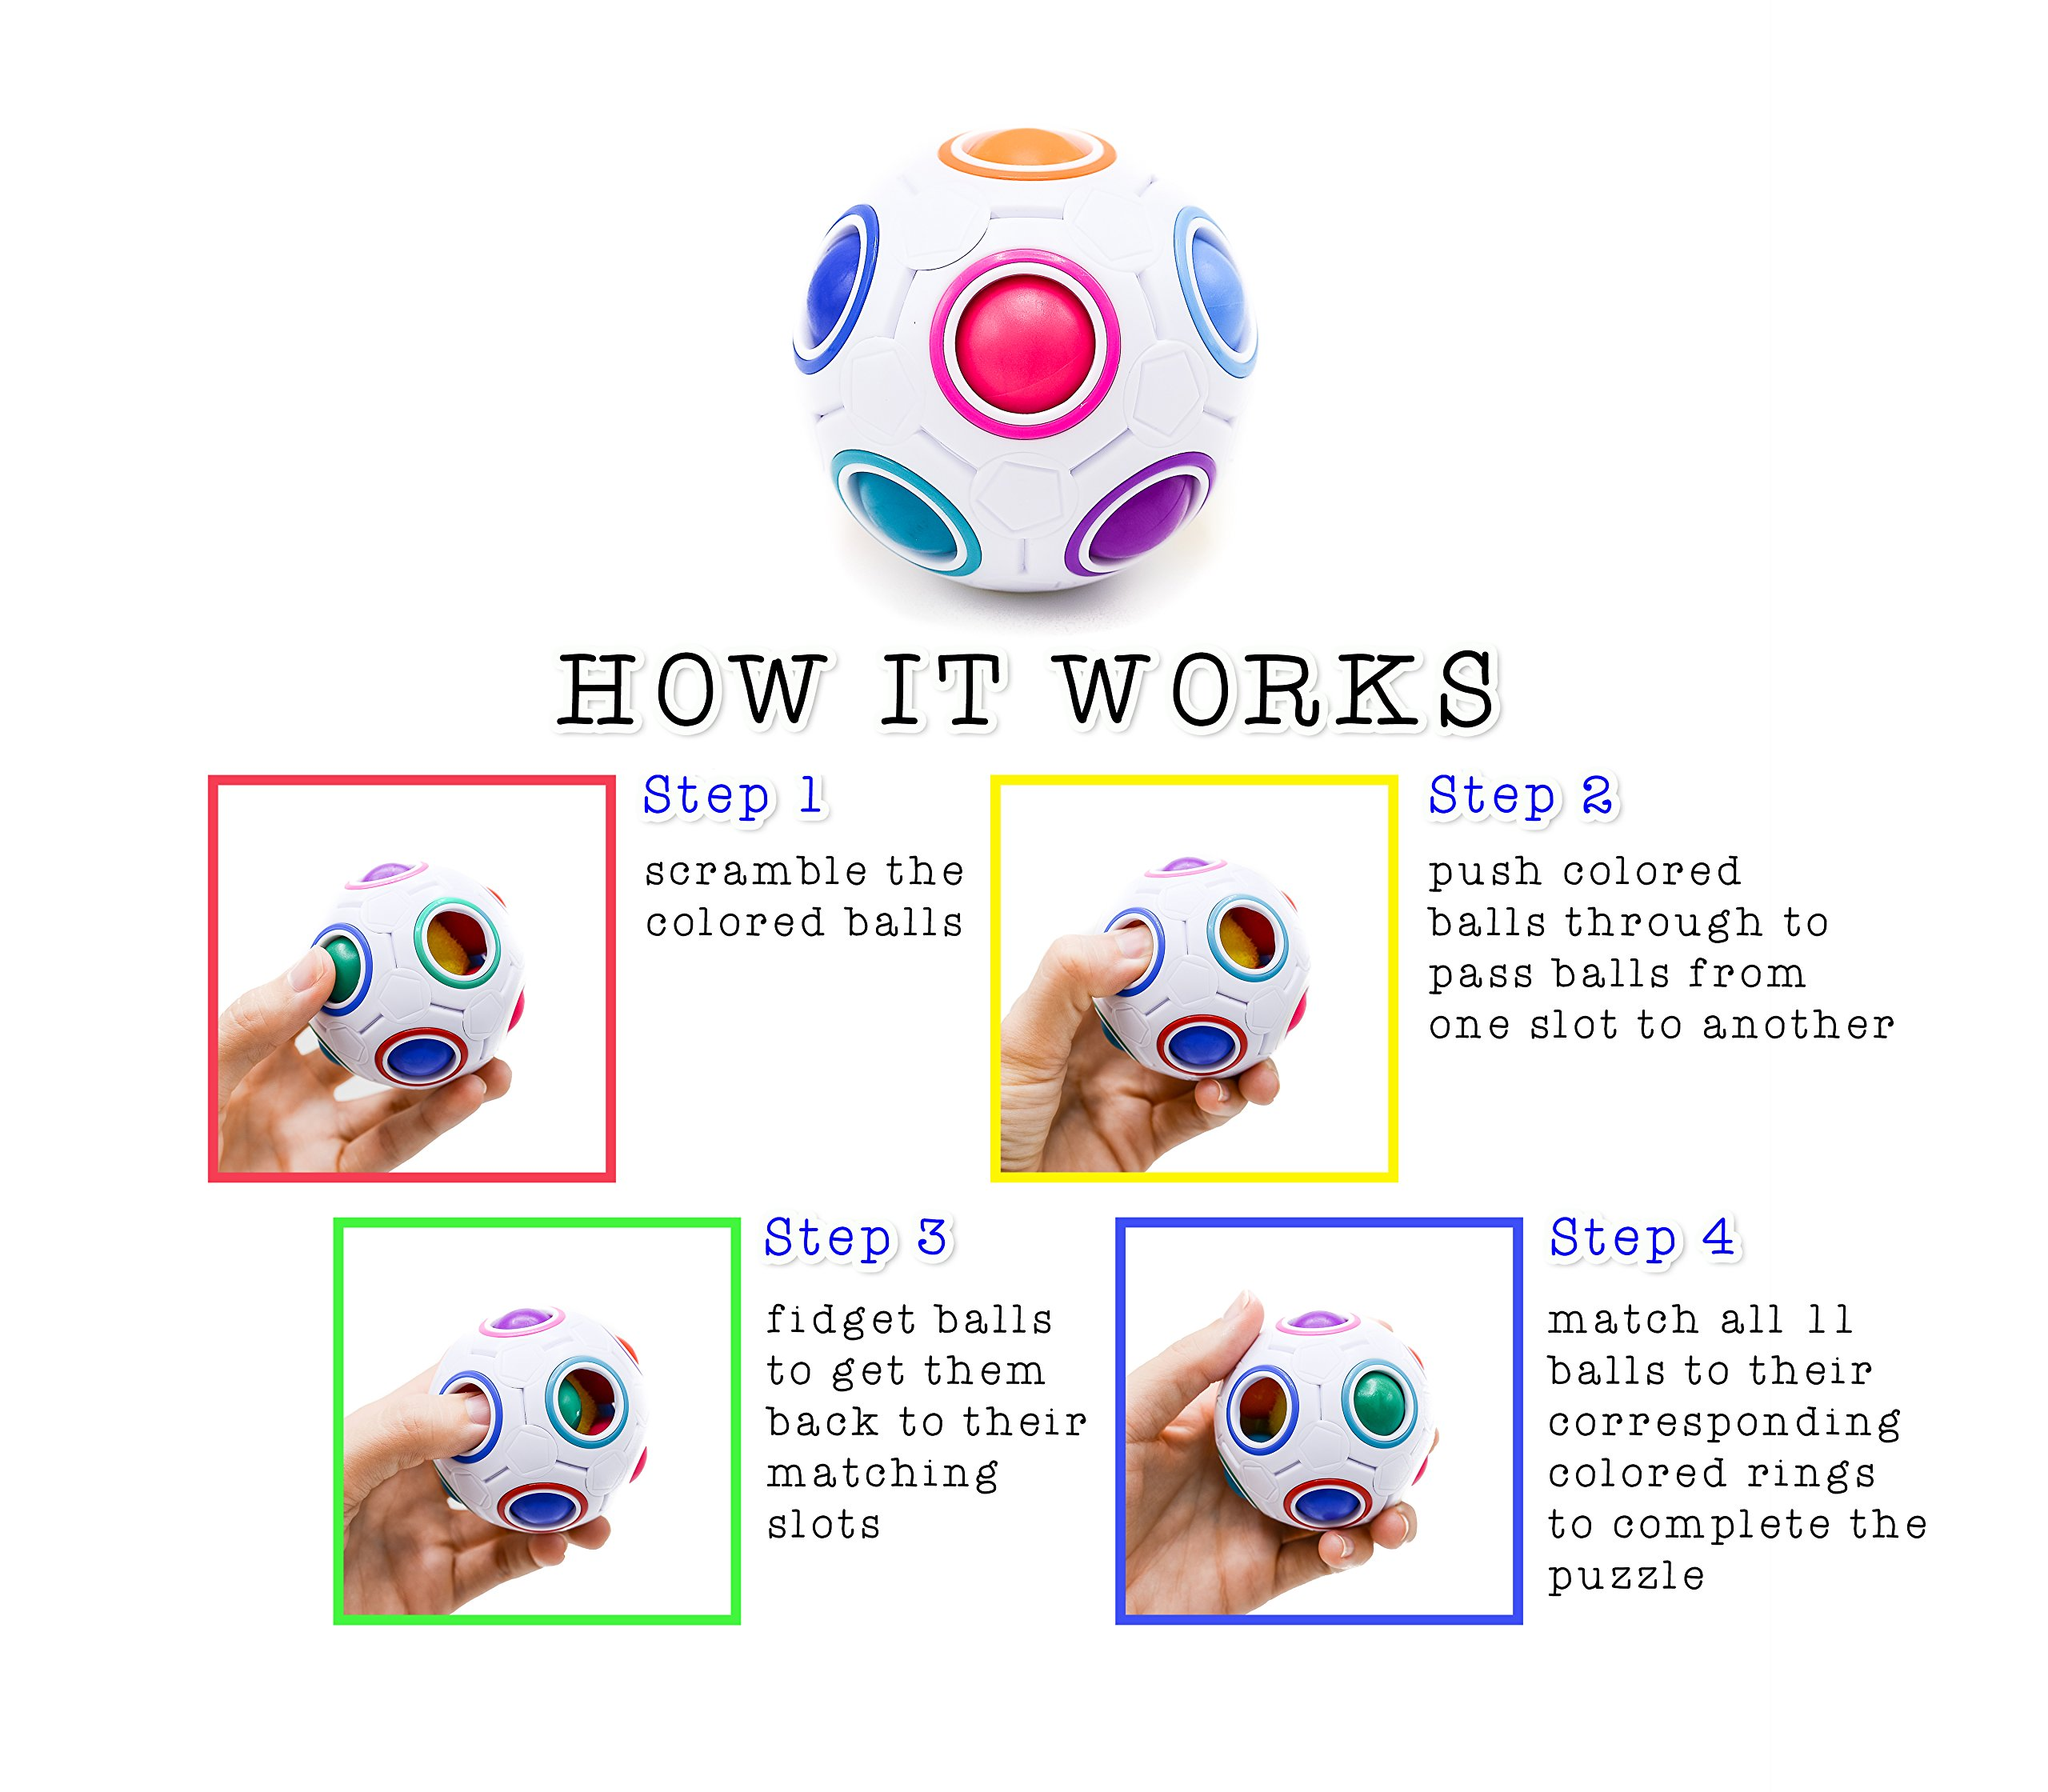 Toyzabo Challenging Puzzle Speed Cube Ball, Fun Fidget Toy Brain Teaser With 11 Rainbow Colors (10 Pack) by Toyzabo (Image #3)